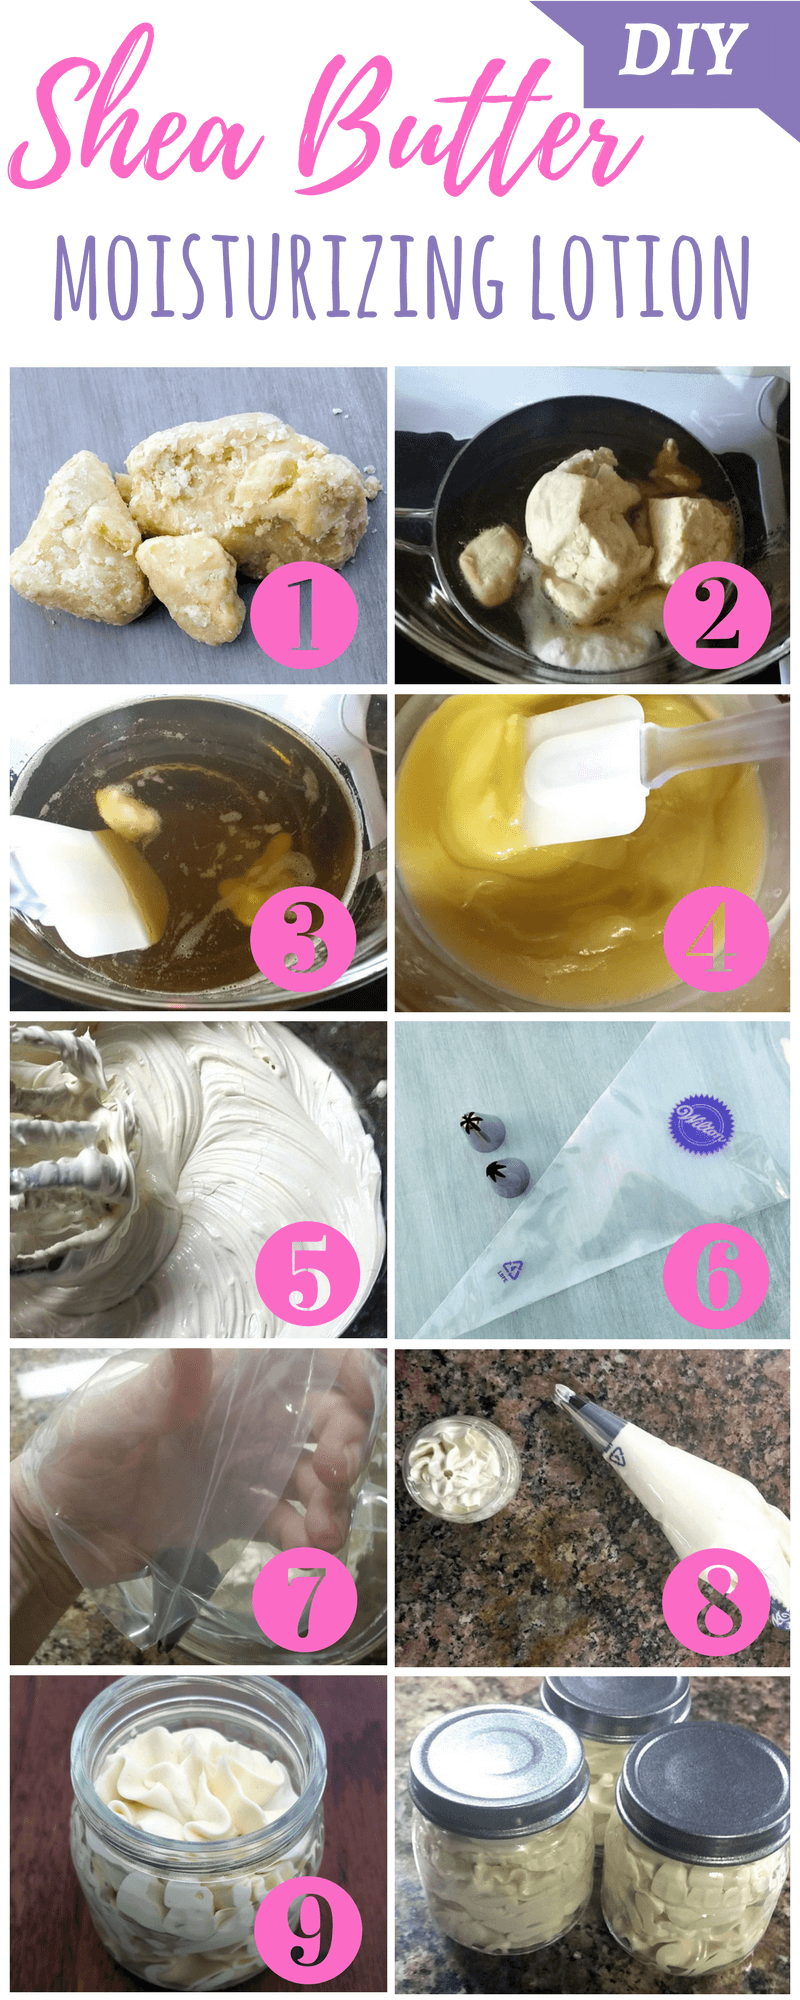 Easy DIY Shea Butter Lotion Recipe